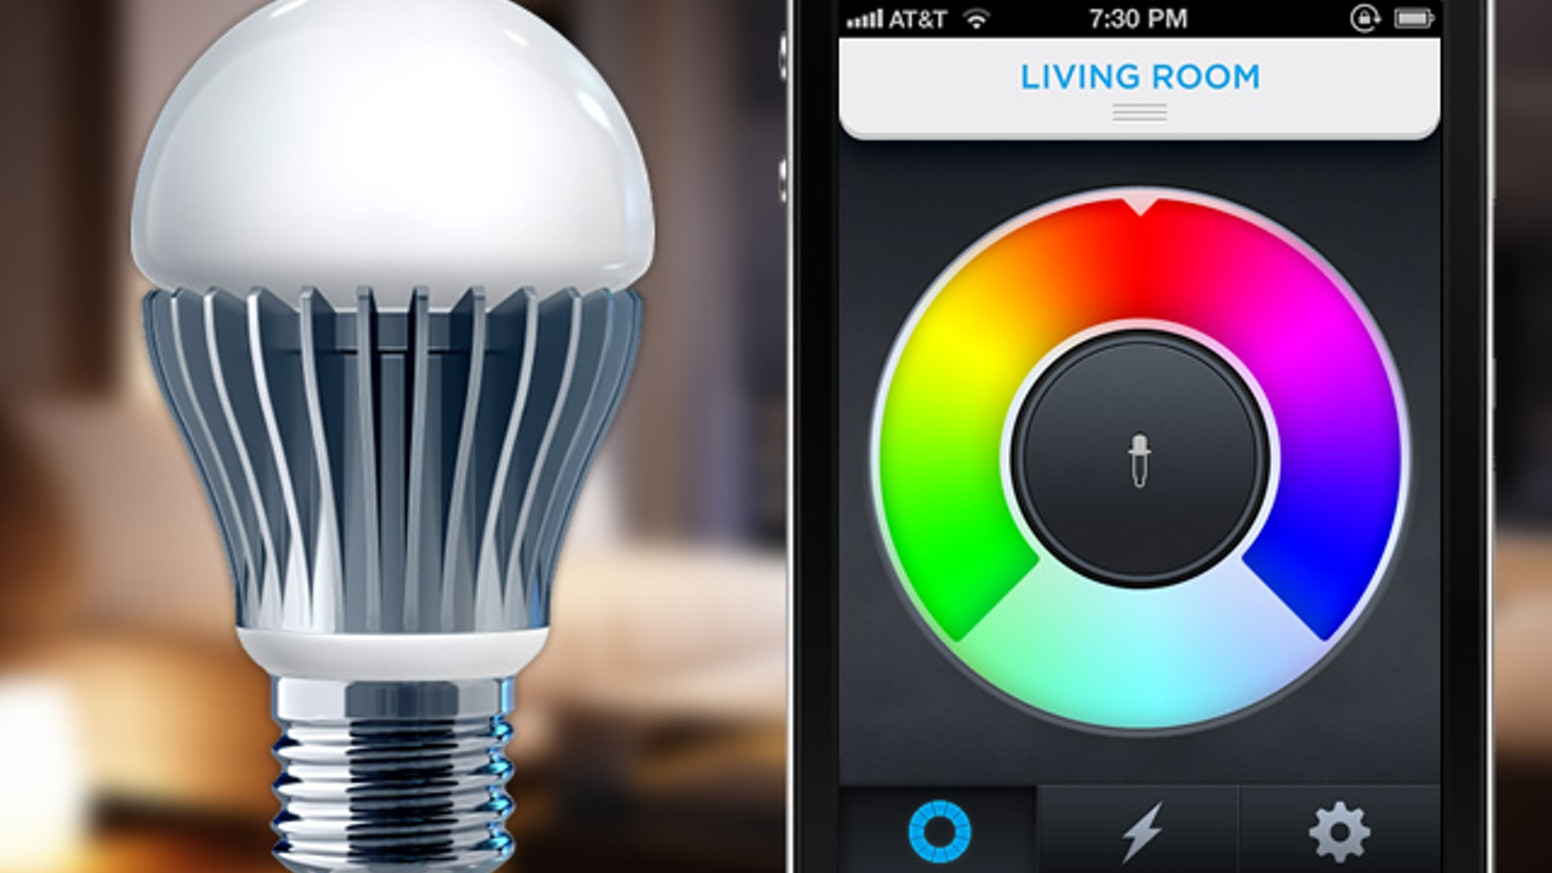 Lifx The Light Bulb Reinvented By Phil Bosua Kickstarter Christmas Wiring Diagram Additionally Putting Lights On A